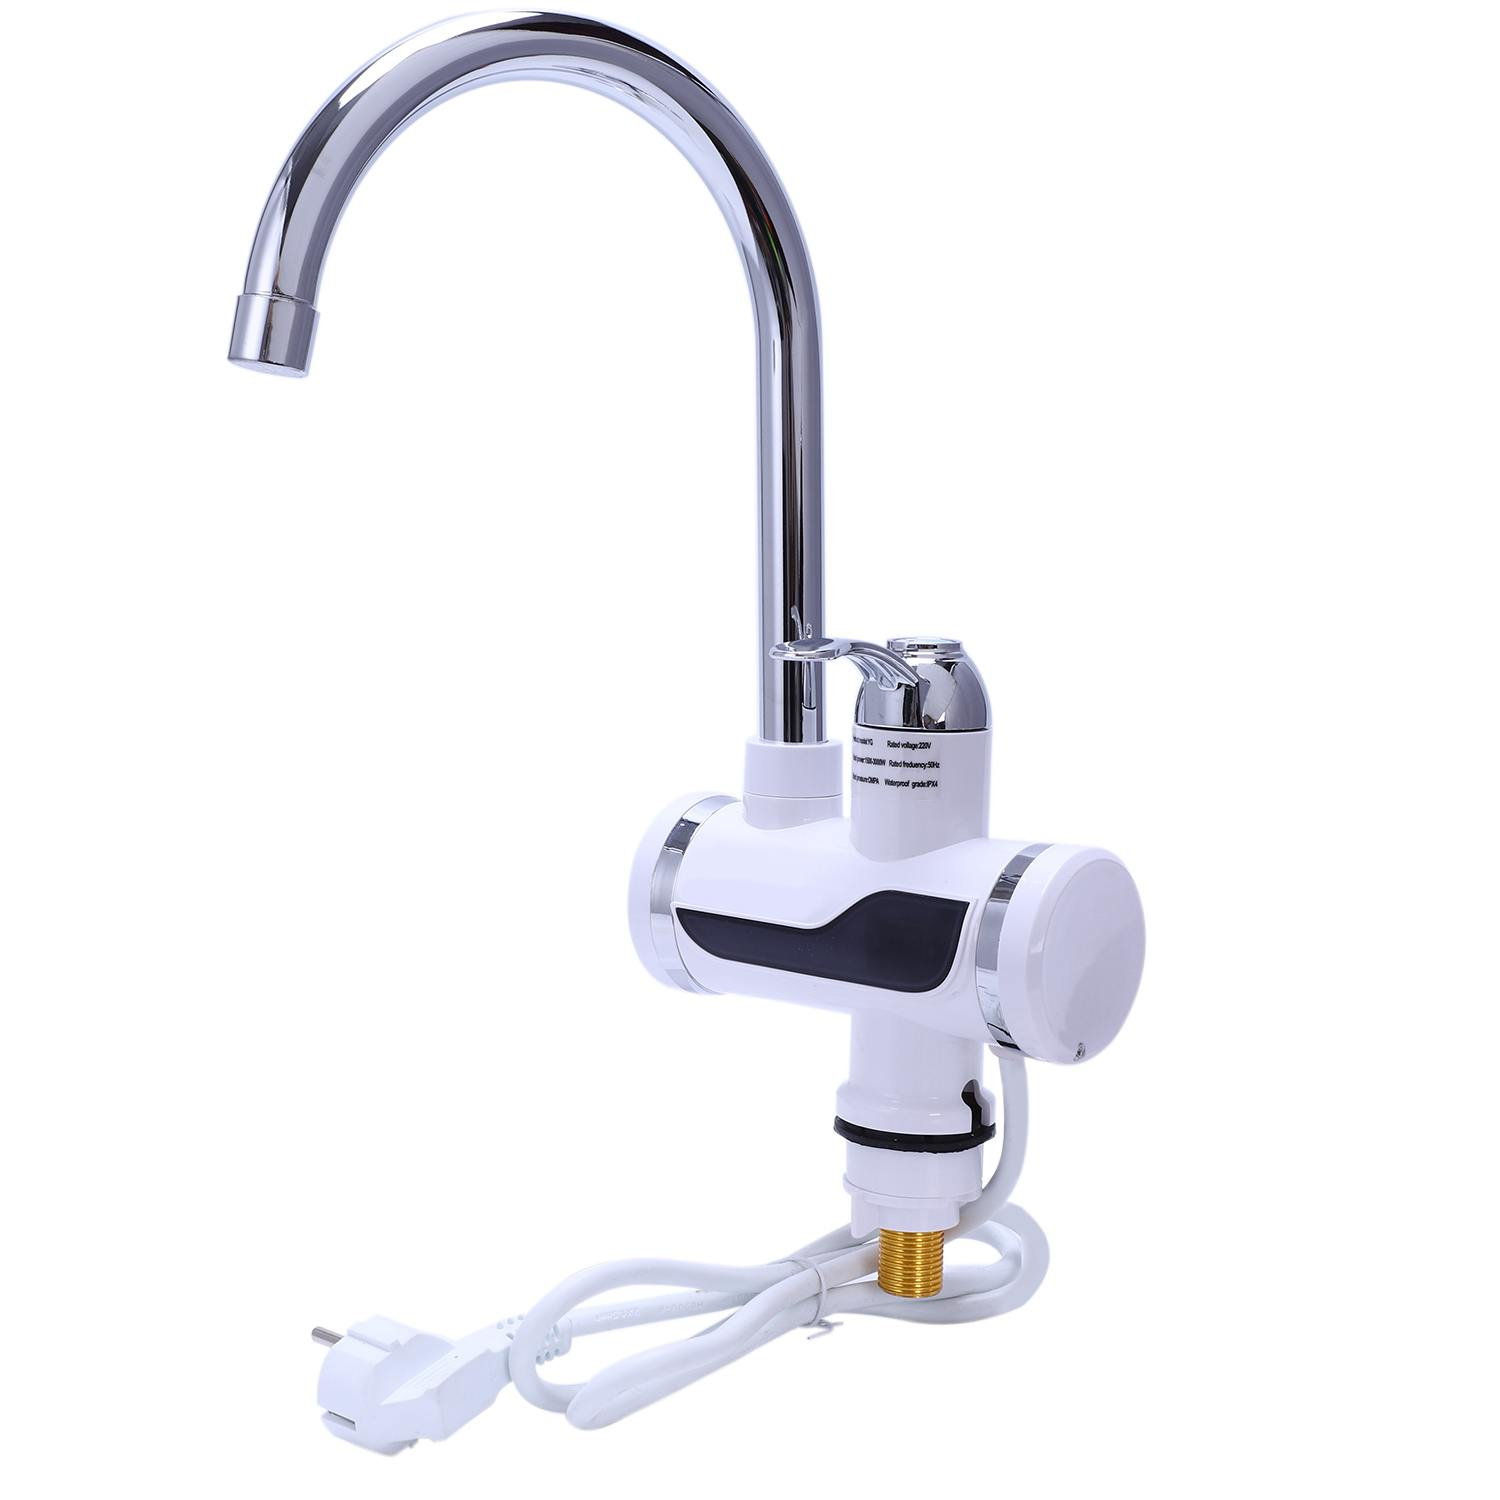 Hot Sale Eu Plug Electric Kitchen Water Heater Tap Instant Hot Water Faucet Heater Cold Heating Faucet Tankless Instantaneous